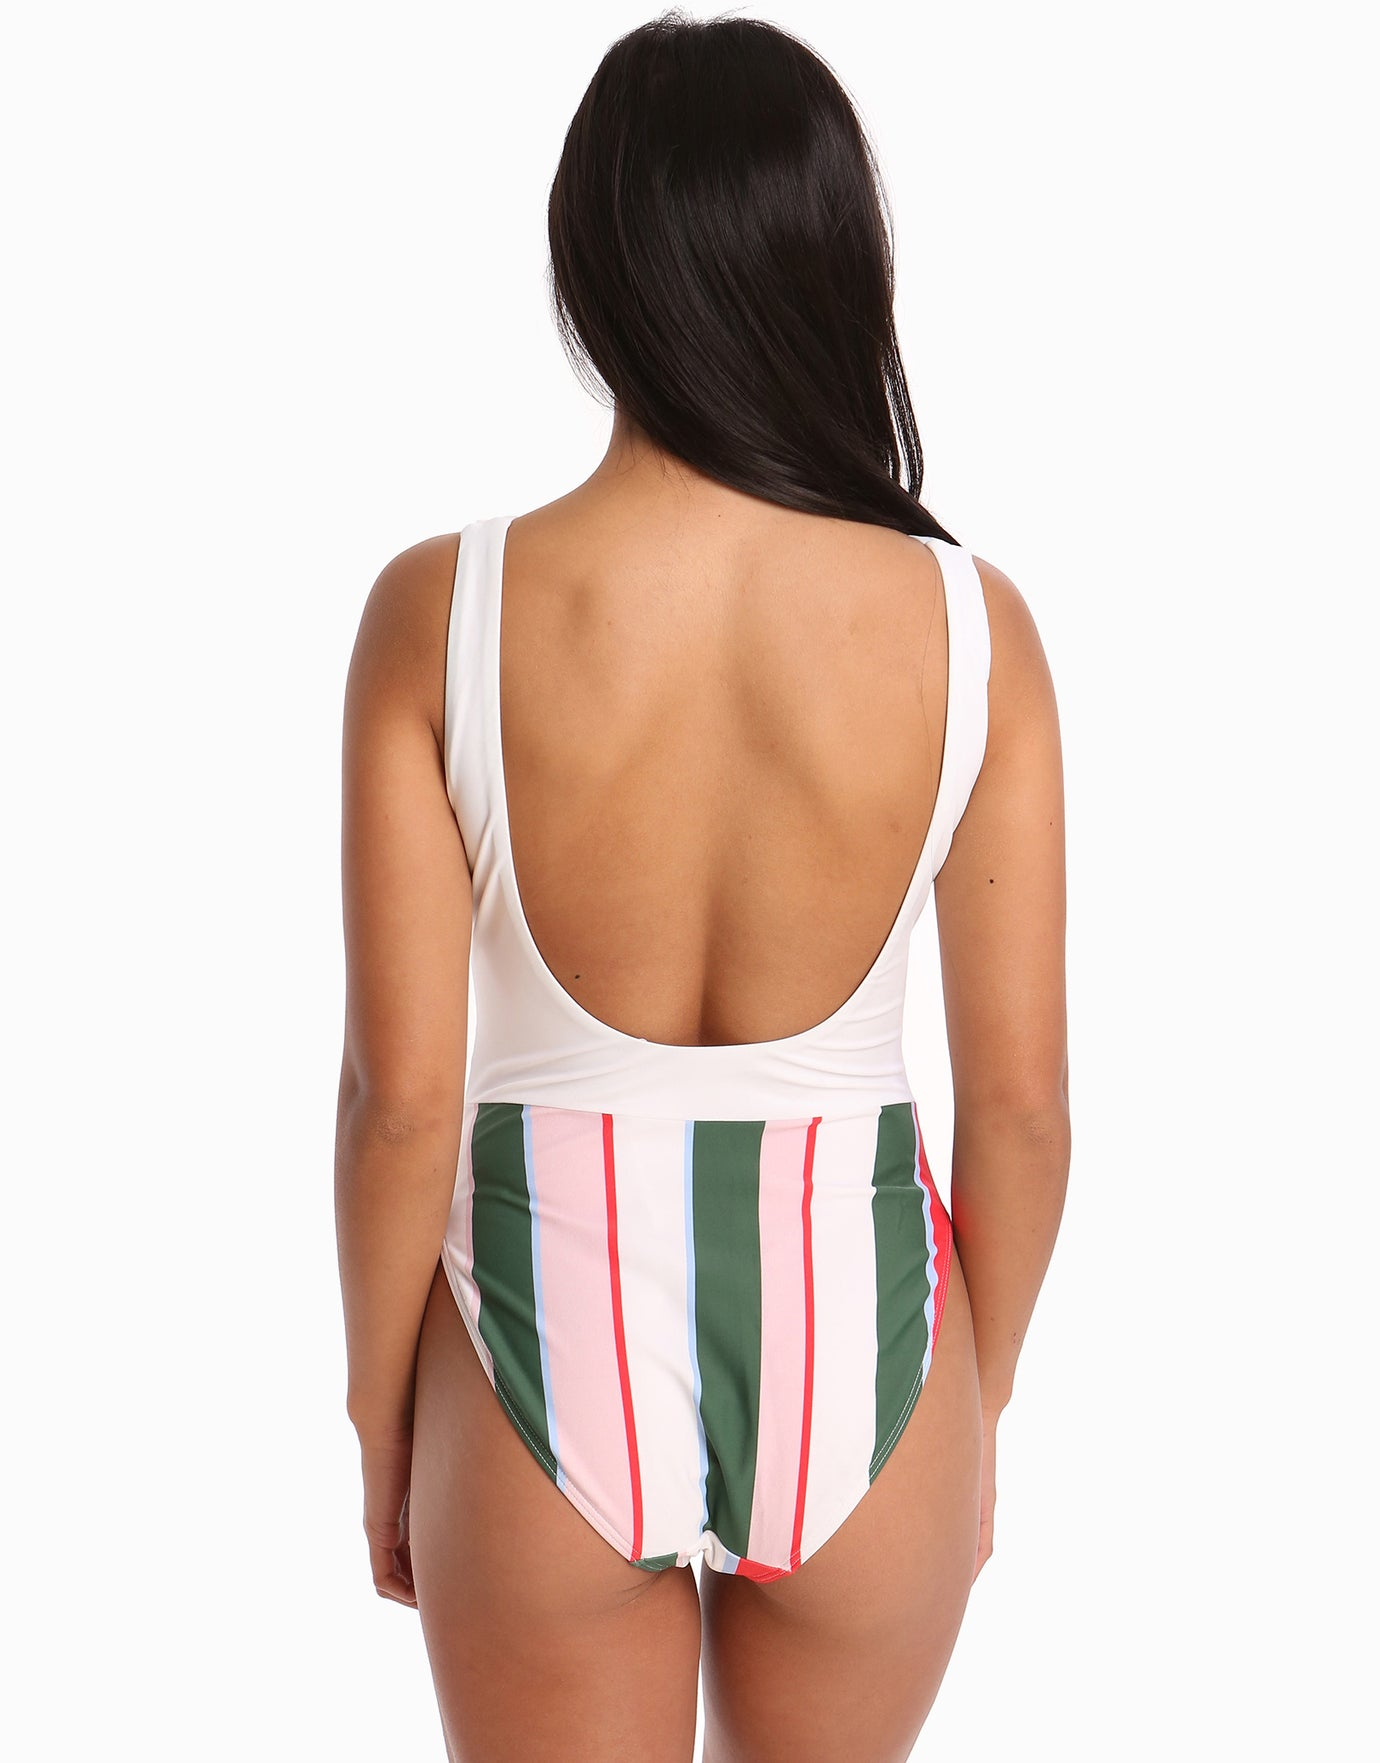 Ted Baker Analee Tutti Frutti Swimsuit - White